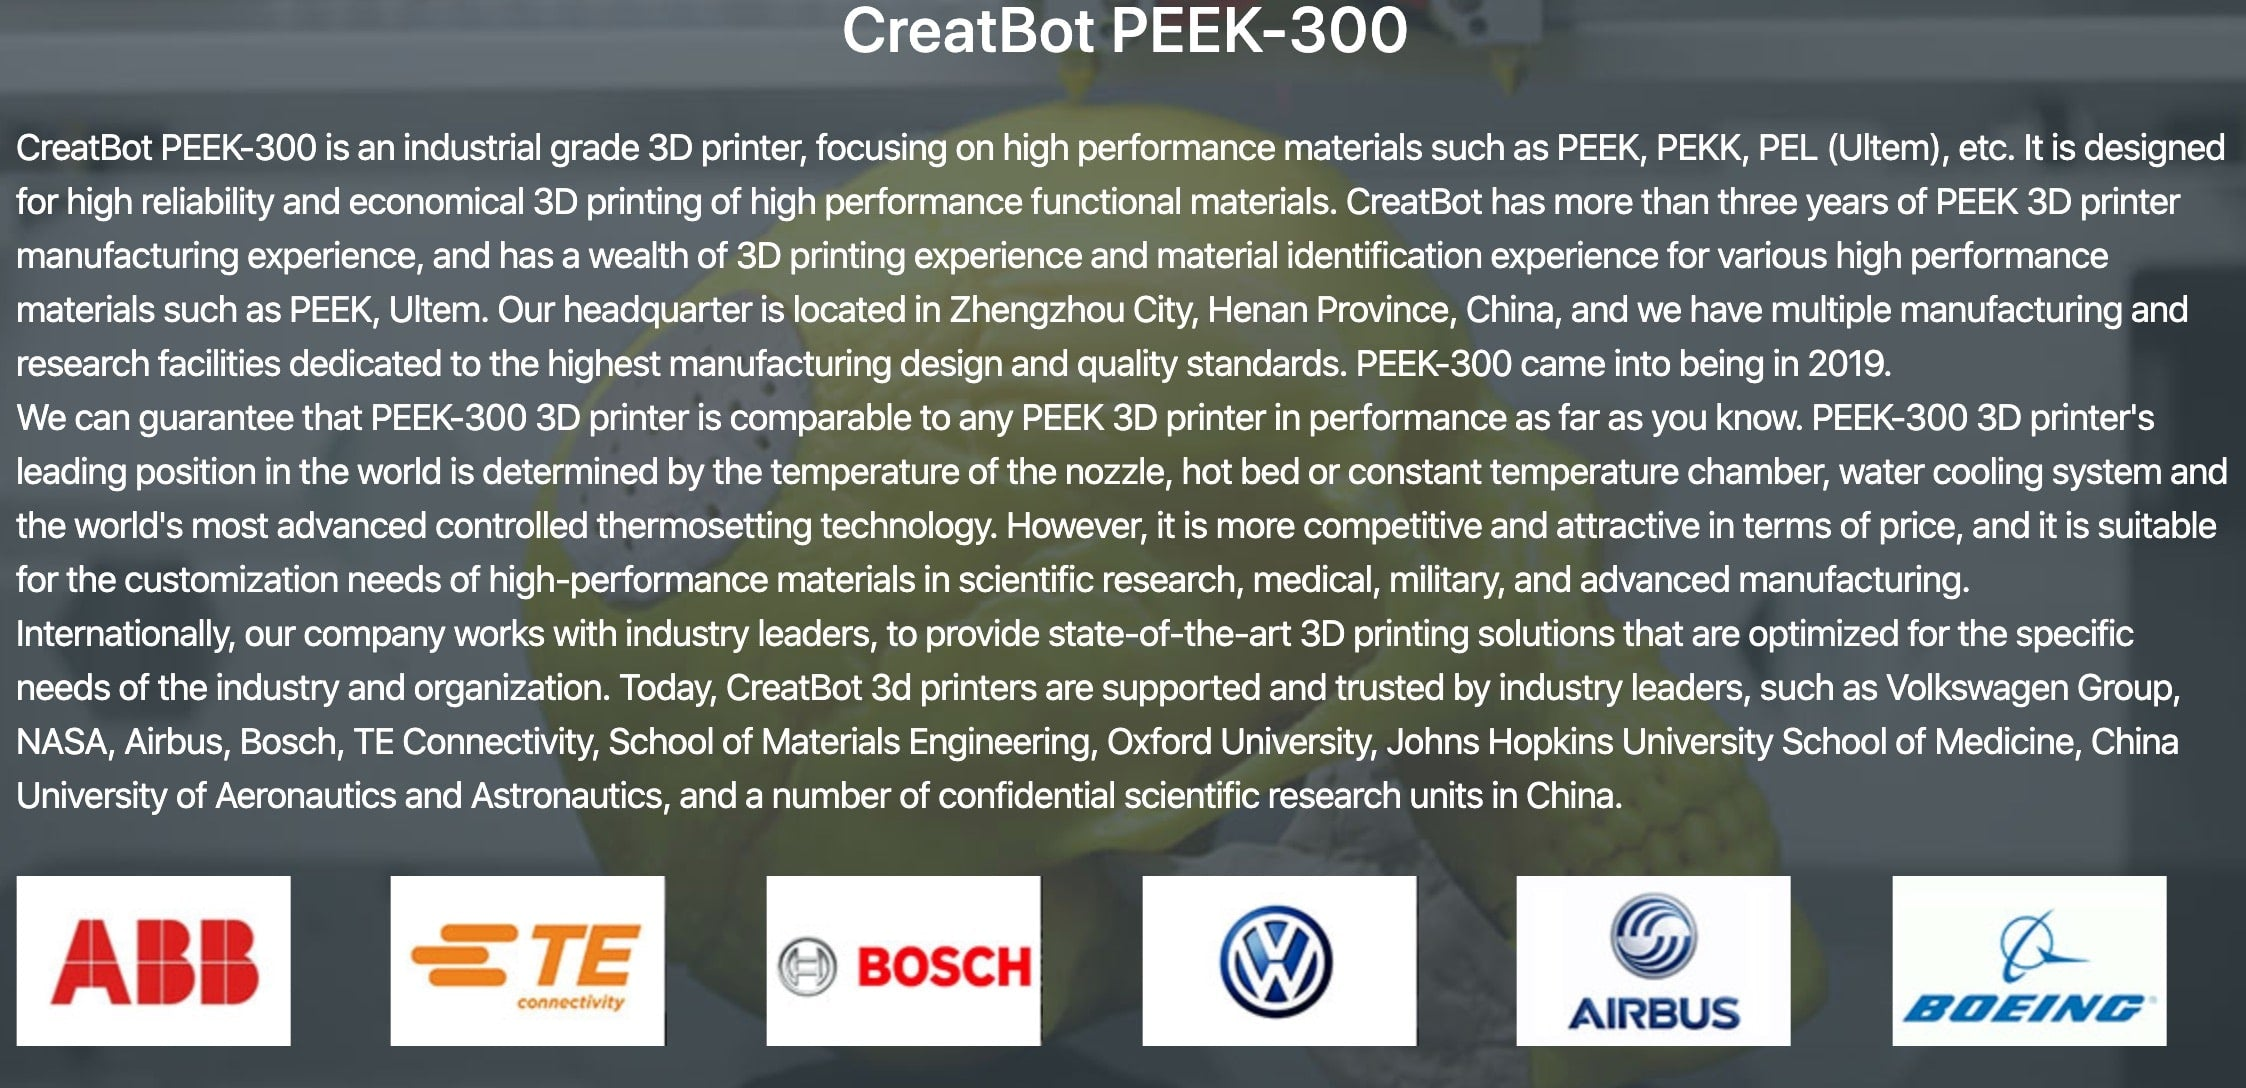 CreatBot PEEK-300 Ultra High-Temperature PEEK ULTEM 3D Printer Description 4